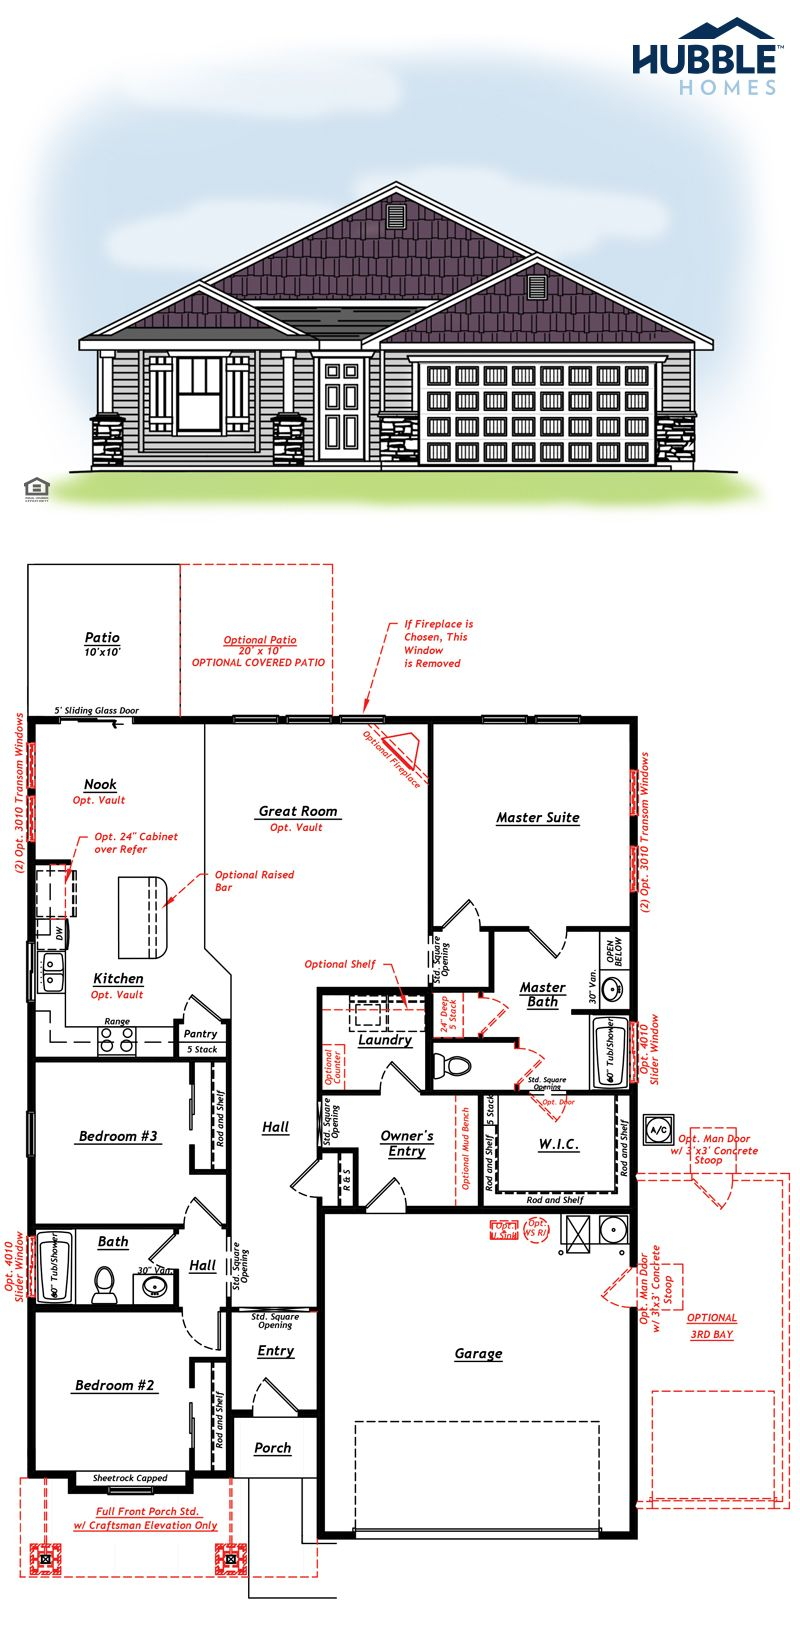 1 627 Sq Ft Birch Floorplan From Hubble Homes Floor Plans Shop House Plans New Homes